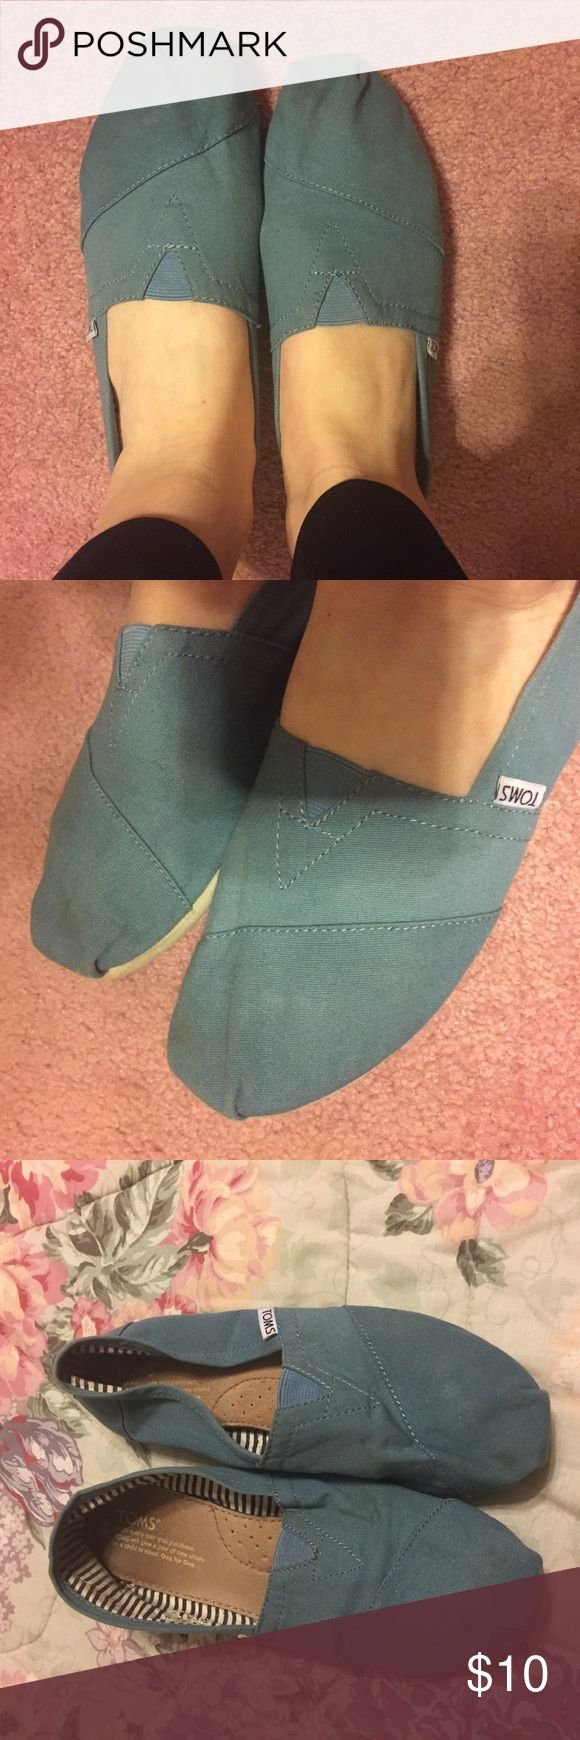 Blue toms Classic blue toms in good used condition. A little bent out of shape from storage but will puff back up with wear. Toms Shoes Flats & Loafers